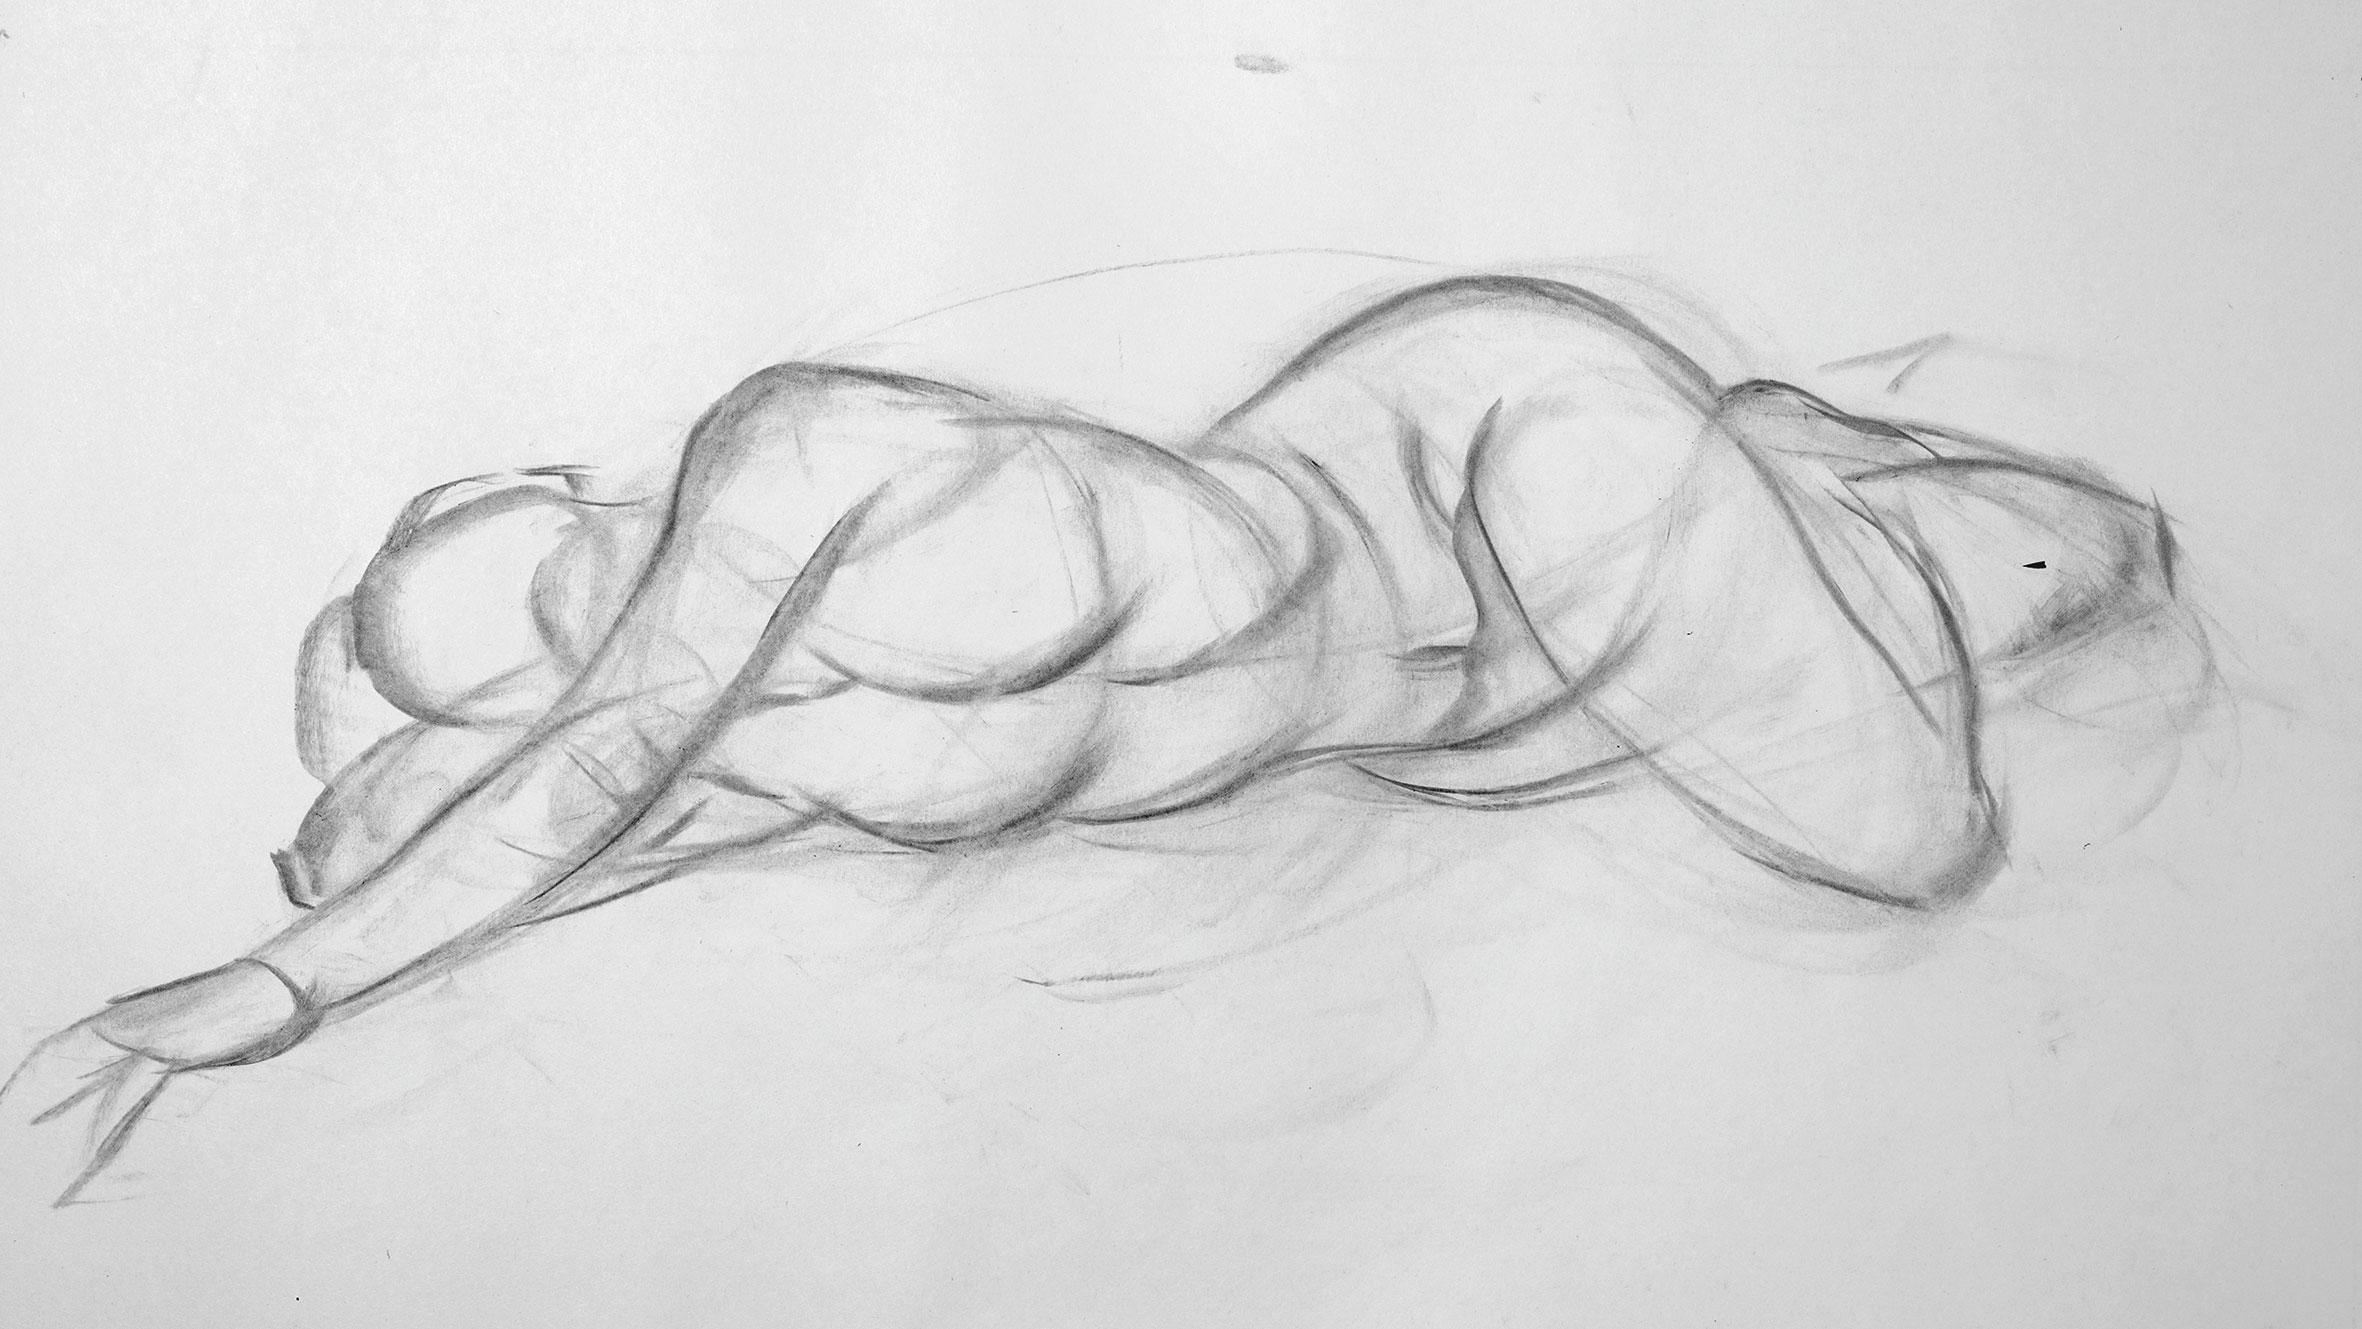 Roughly drawn nude female figure